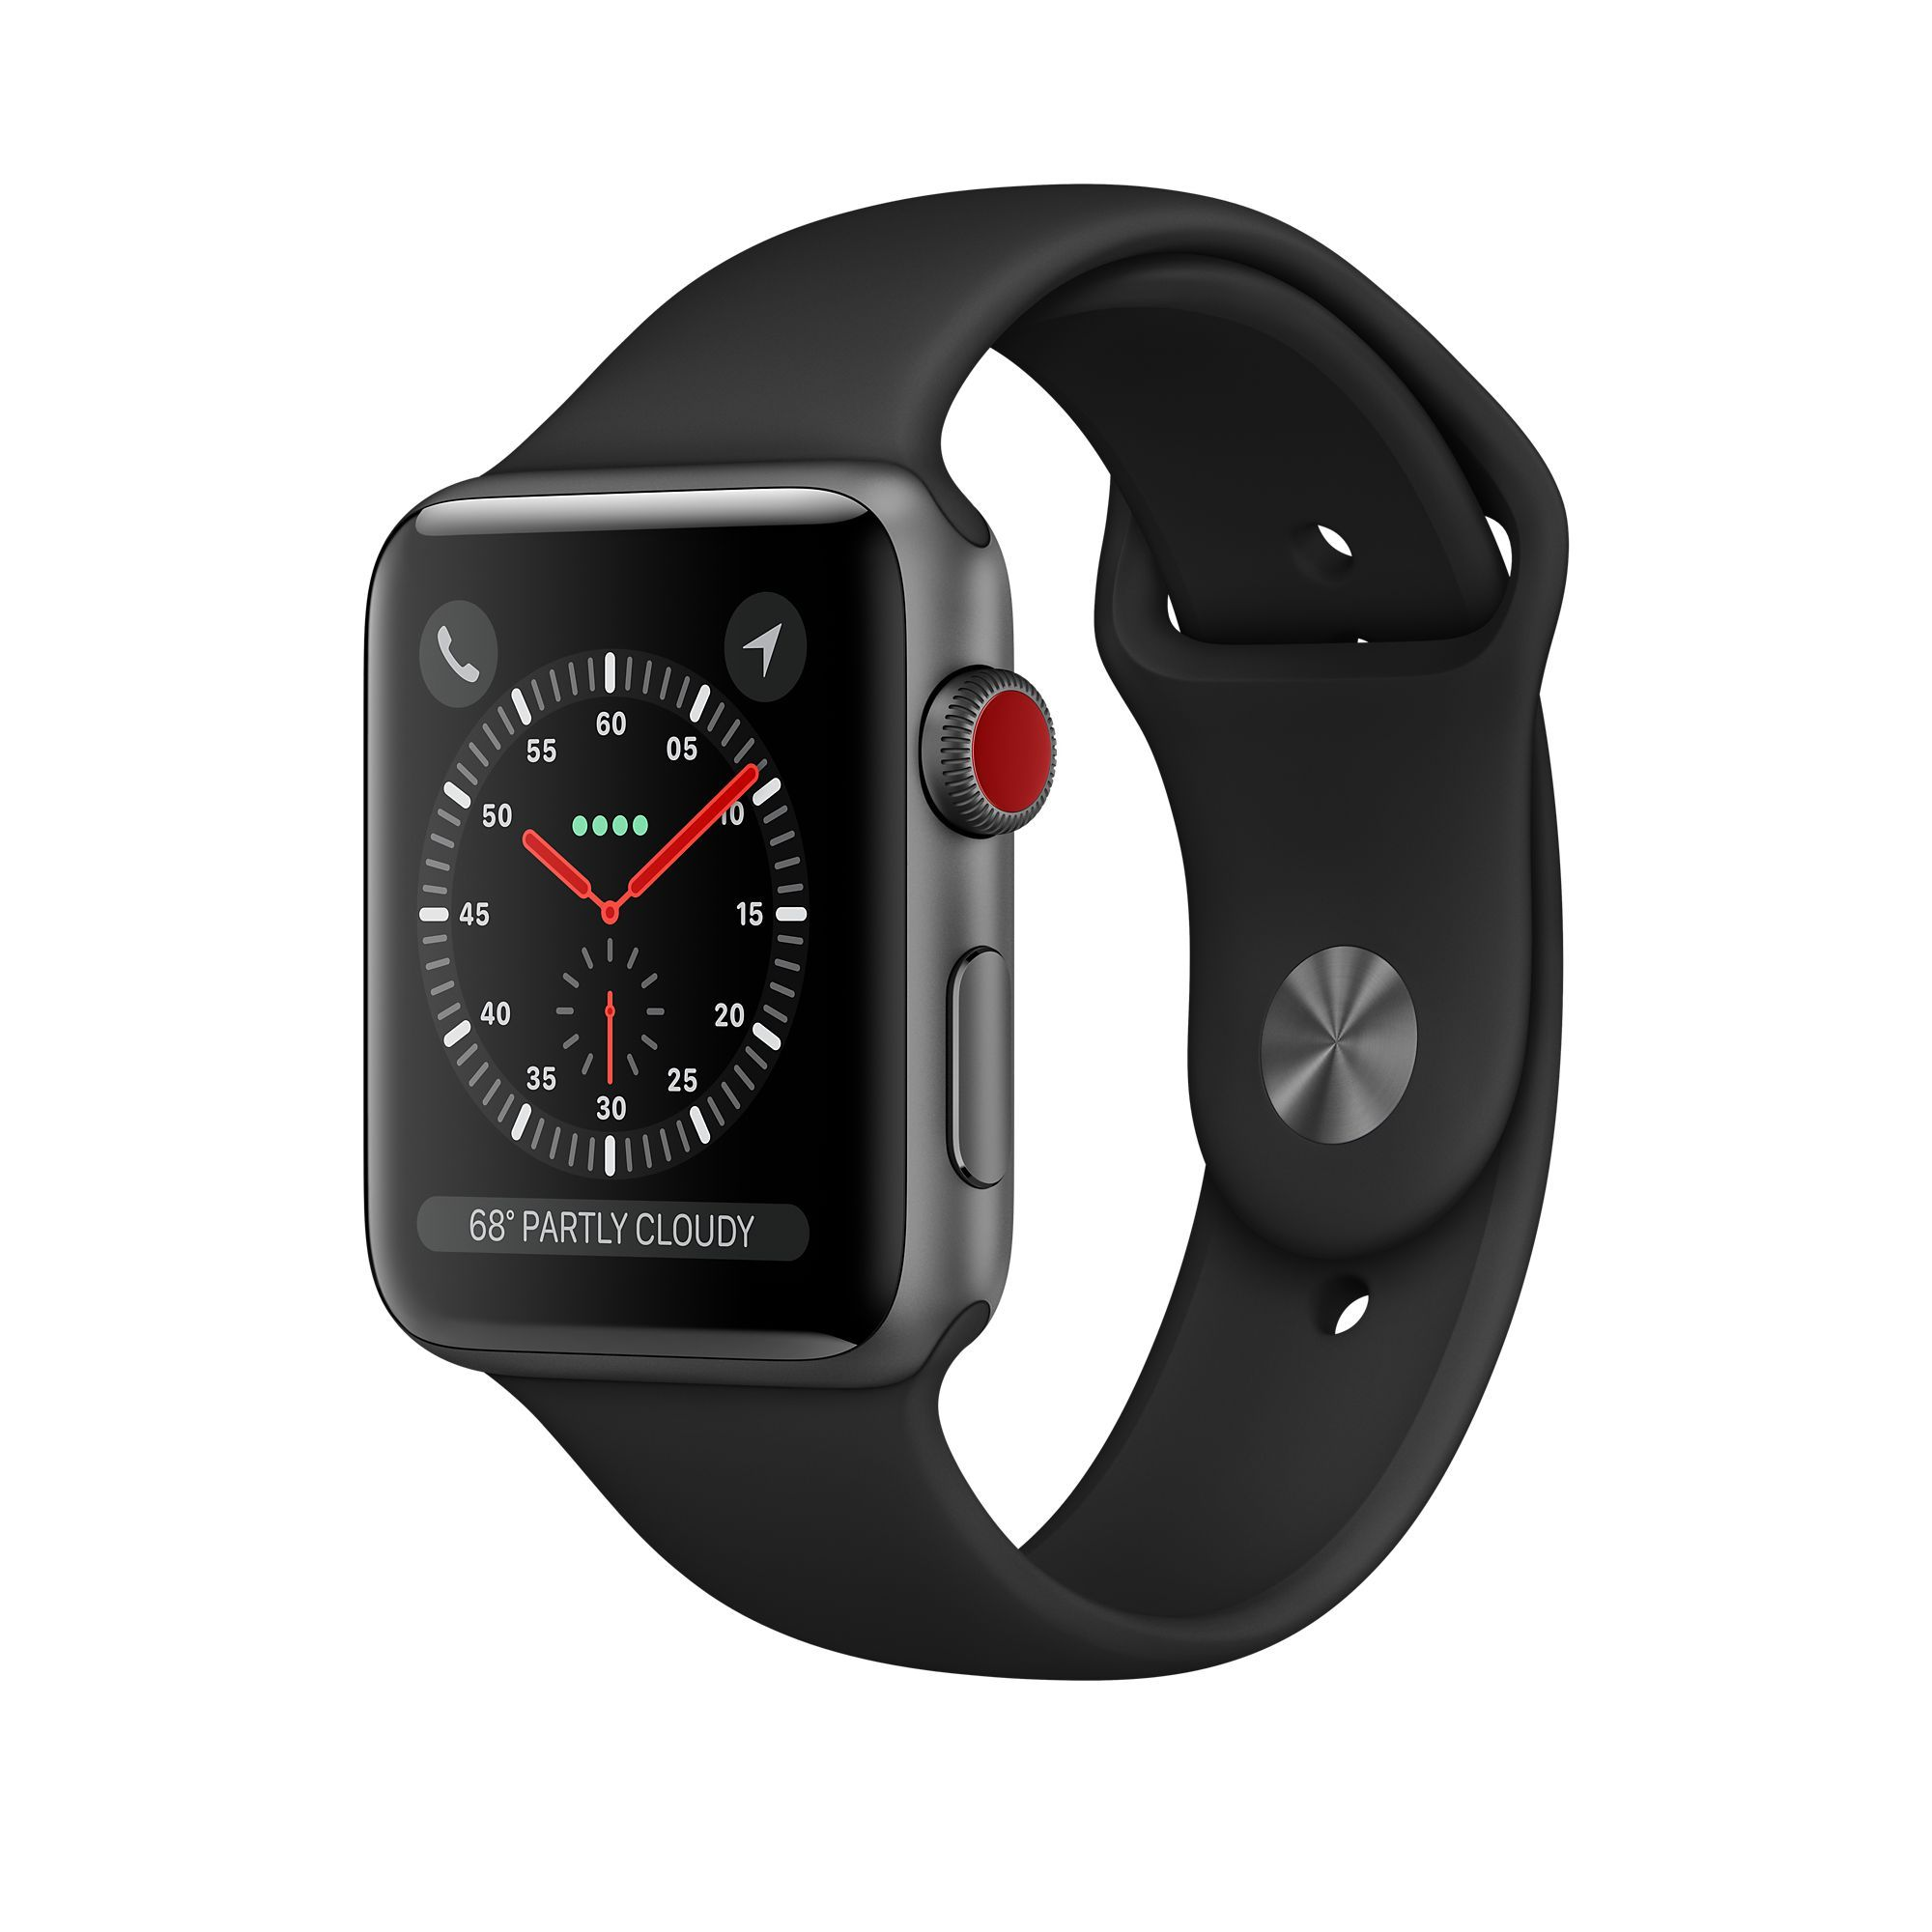 Apple Watch Series 3 42mm (GPS + Cellular), Gray Aluminum - Black Sport Band 99%